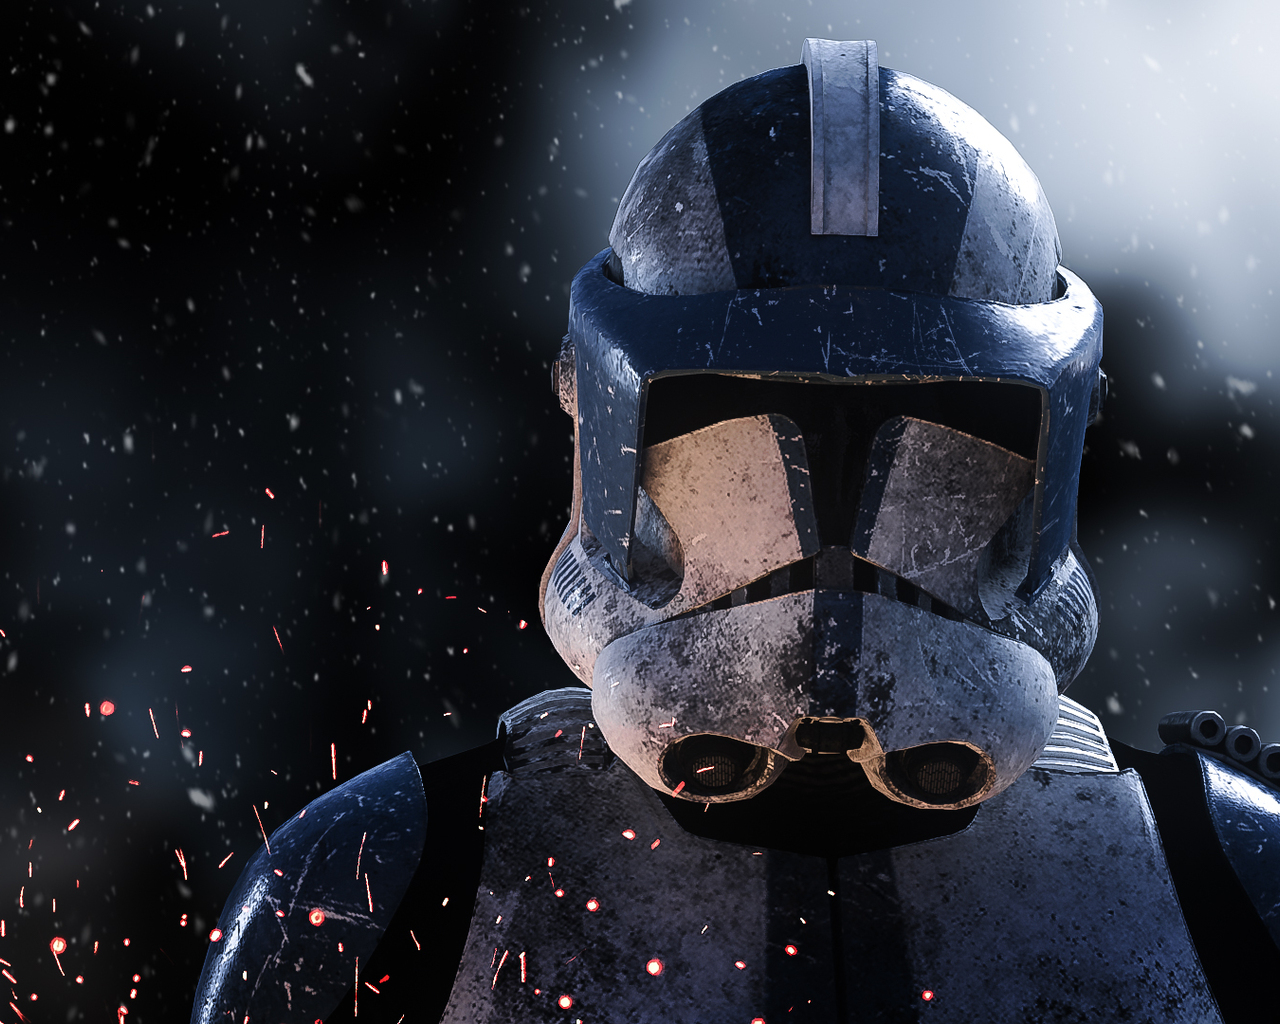 clone-trooper-star-wars-2018-ss.jpg